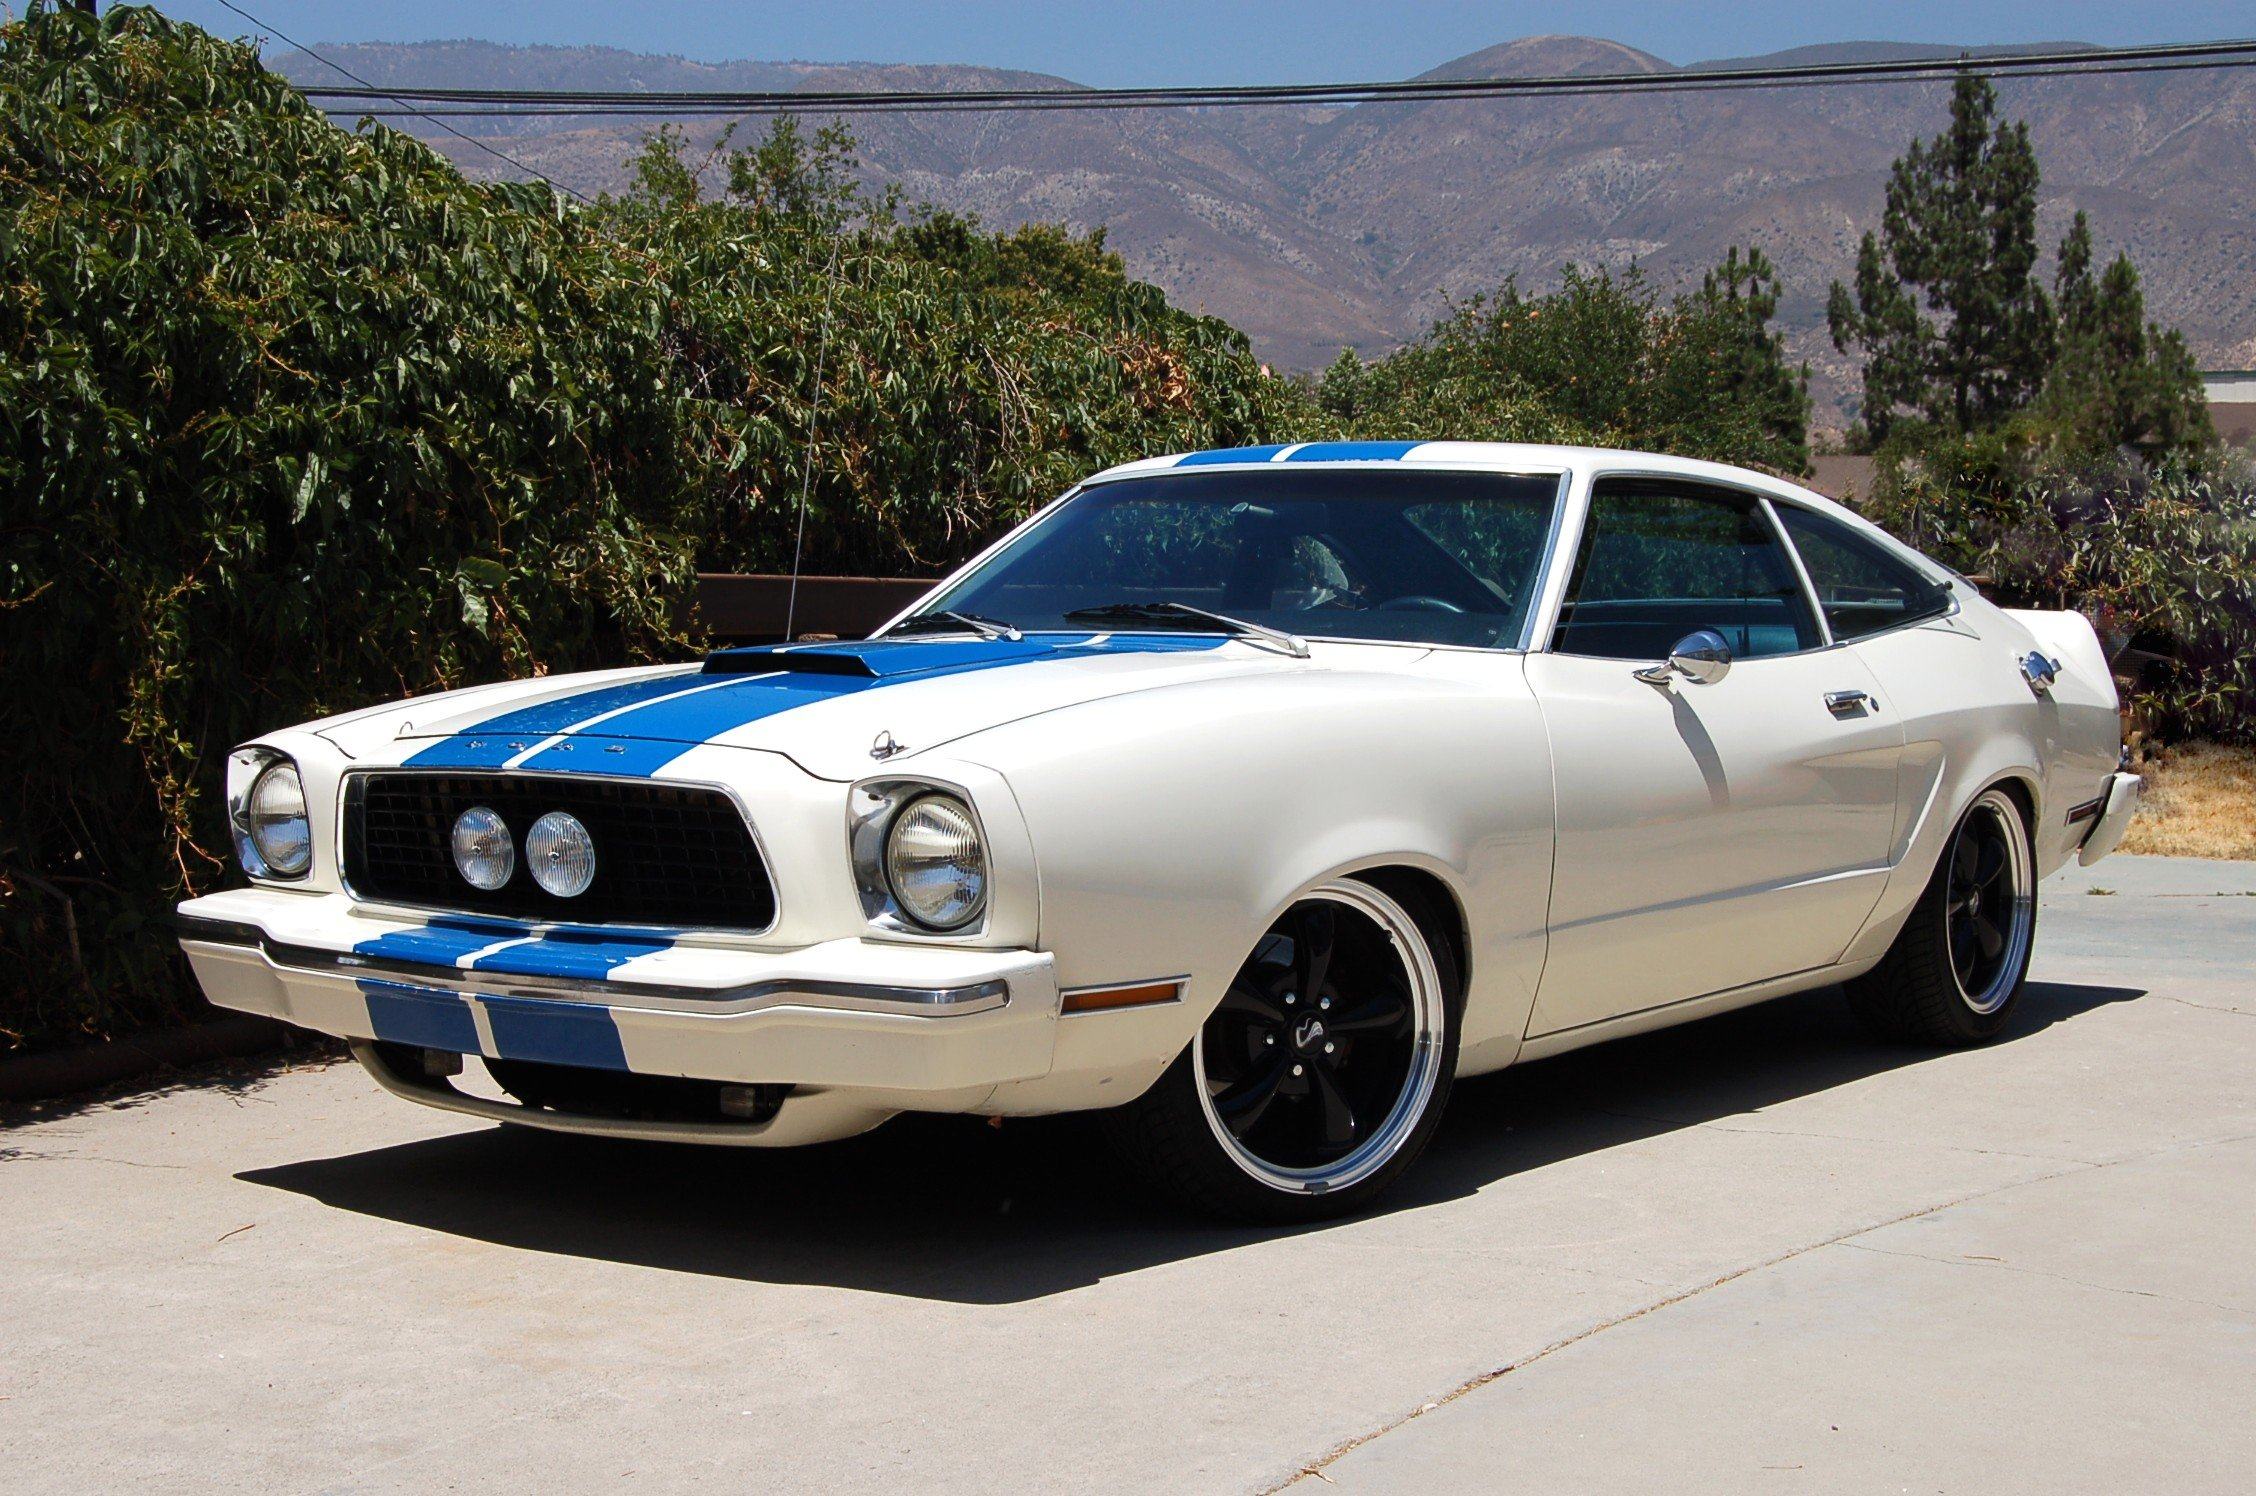 39 best mustang ii images on pinterest ford mustangs mustangs and cool cars